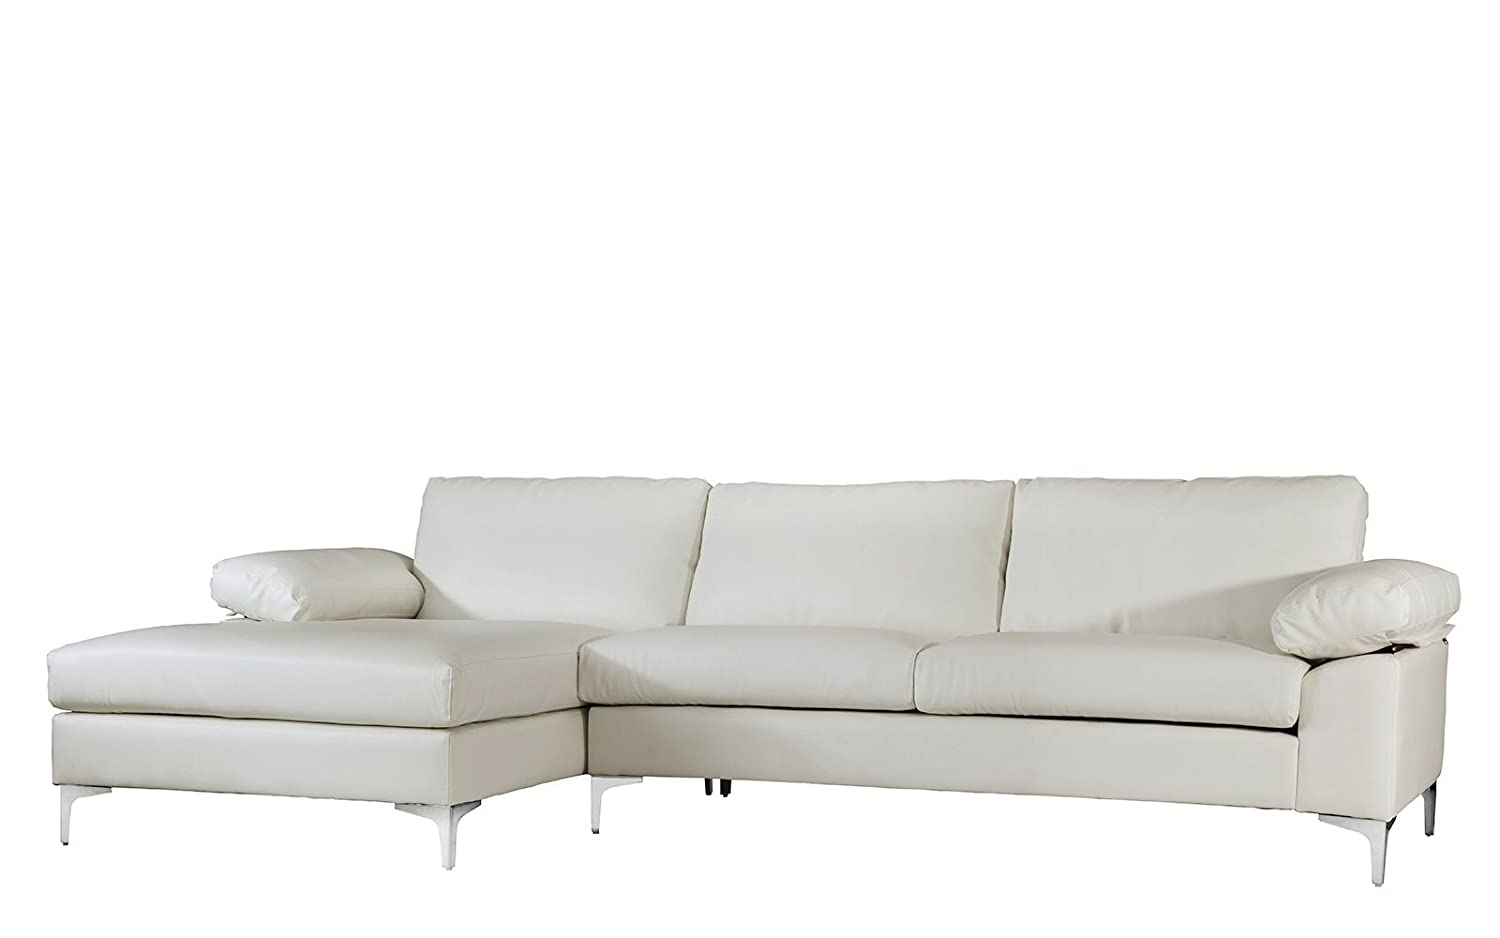 Modern Large Faux Leather Sectional Sofa Couch w/ Extra ...